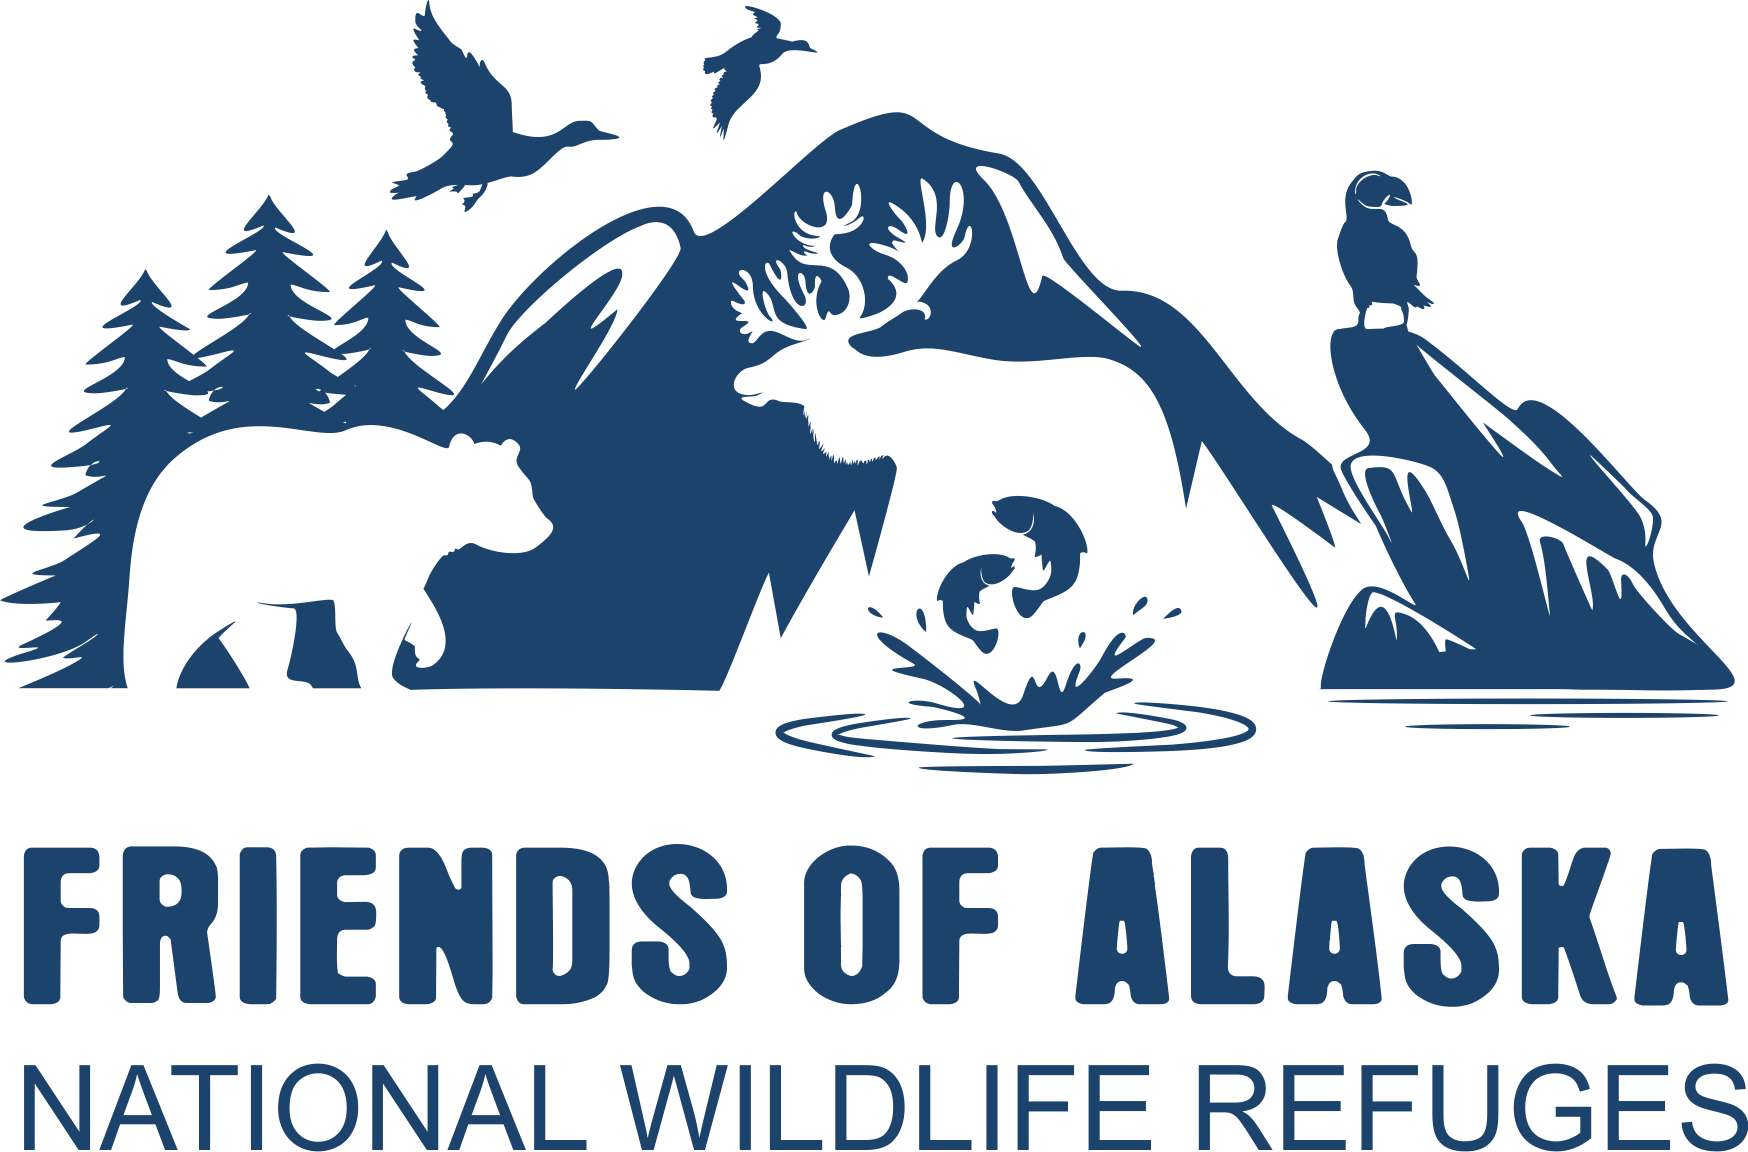 Create a timeless logo representing Alaska's vast wilderness and wildlife that inspires environmental conservation